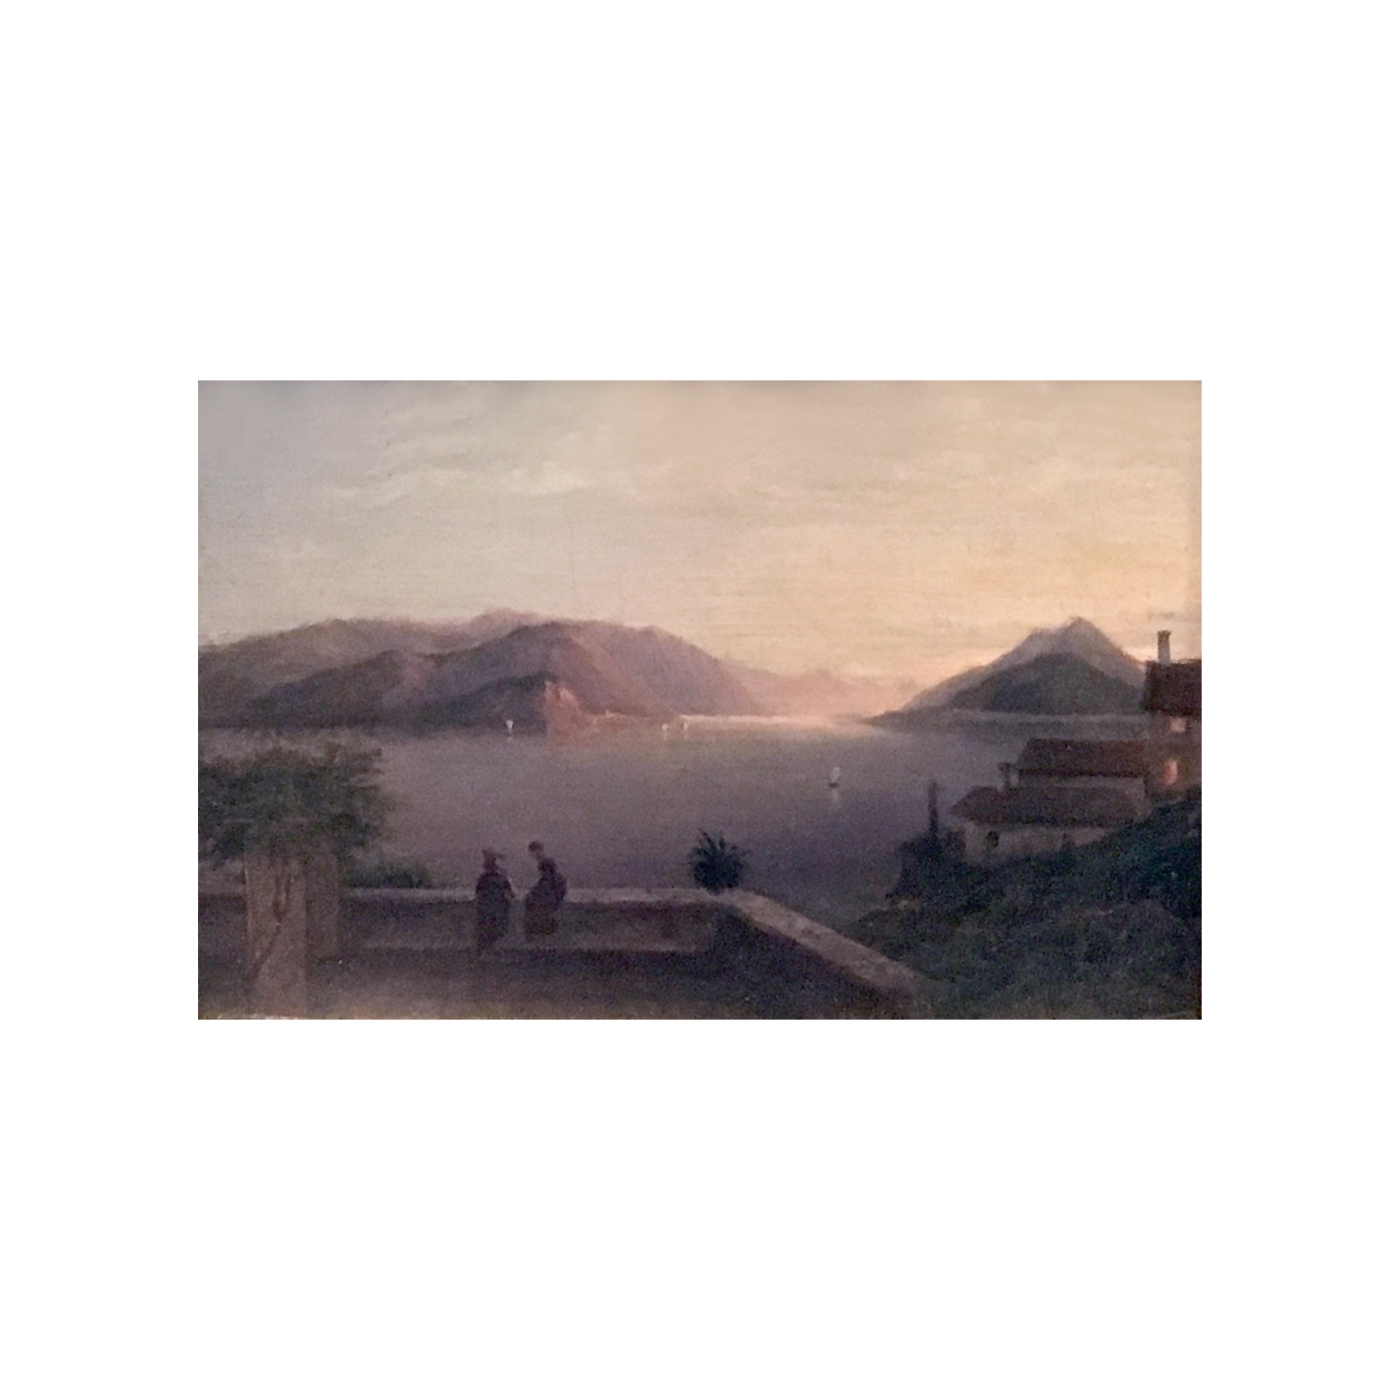 School of Caspar David Friedrich [1774-1840] : Figures on a patio at sunset, ca.1800s.